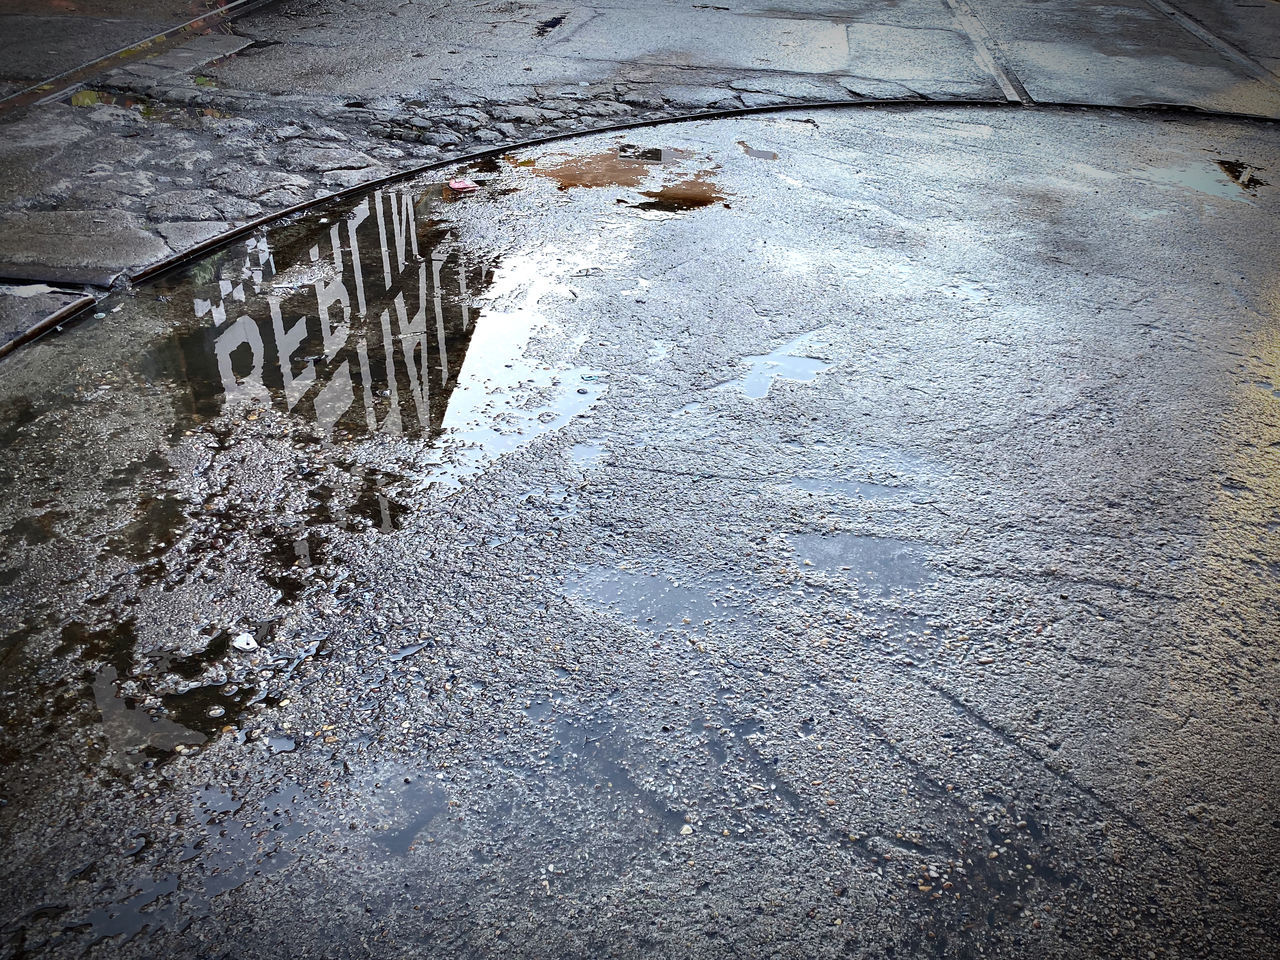 HIGH ANGLE VIEW OF WET PUDDLE ON SNOW